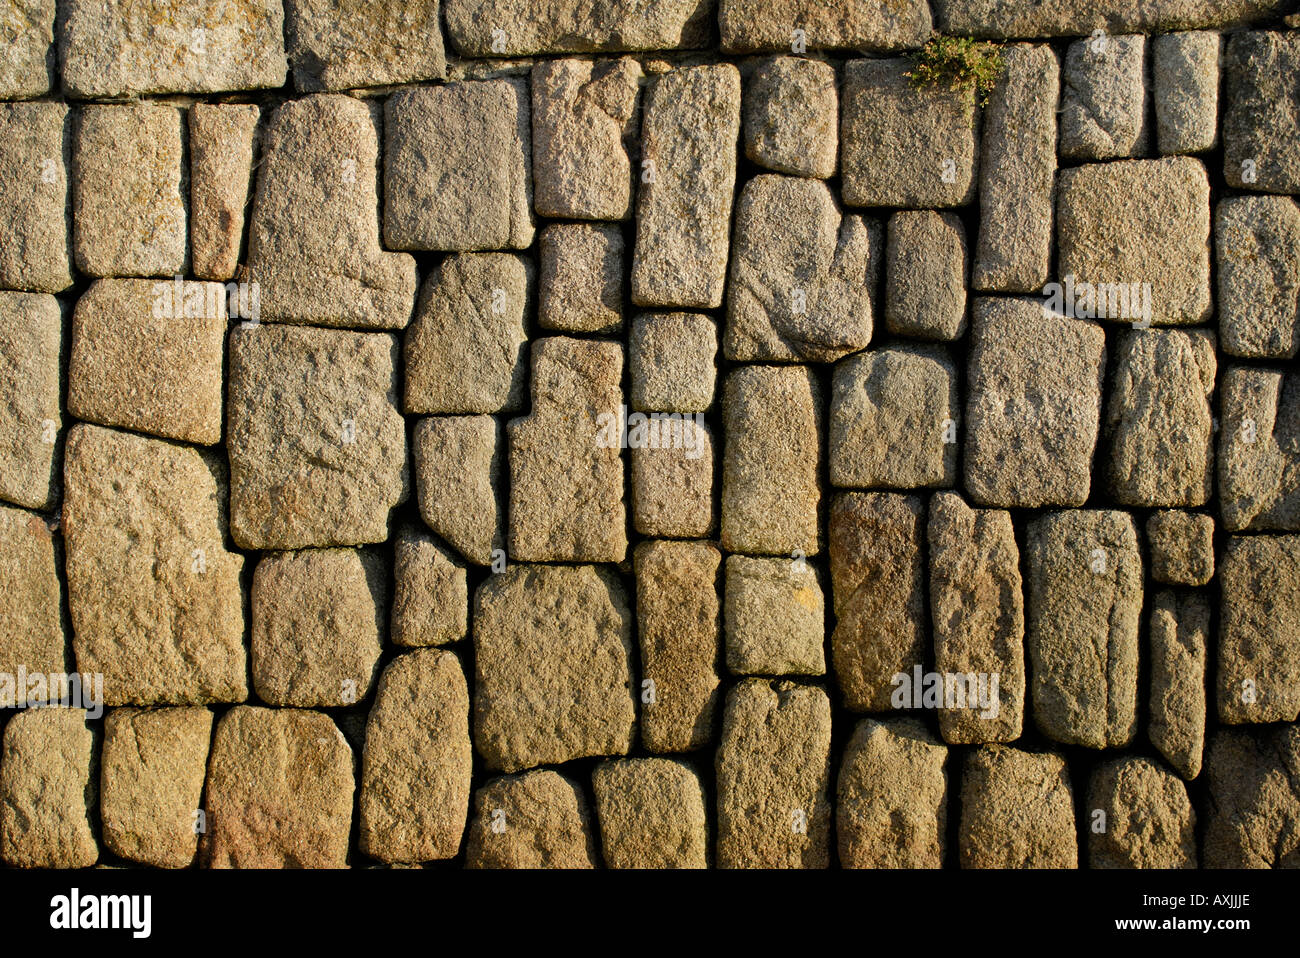 The harbour walls at Hugh Town are built from blocks of granite - Stock Image